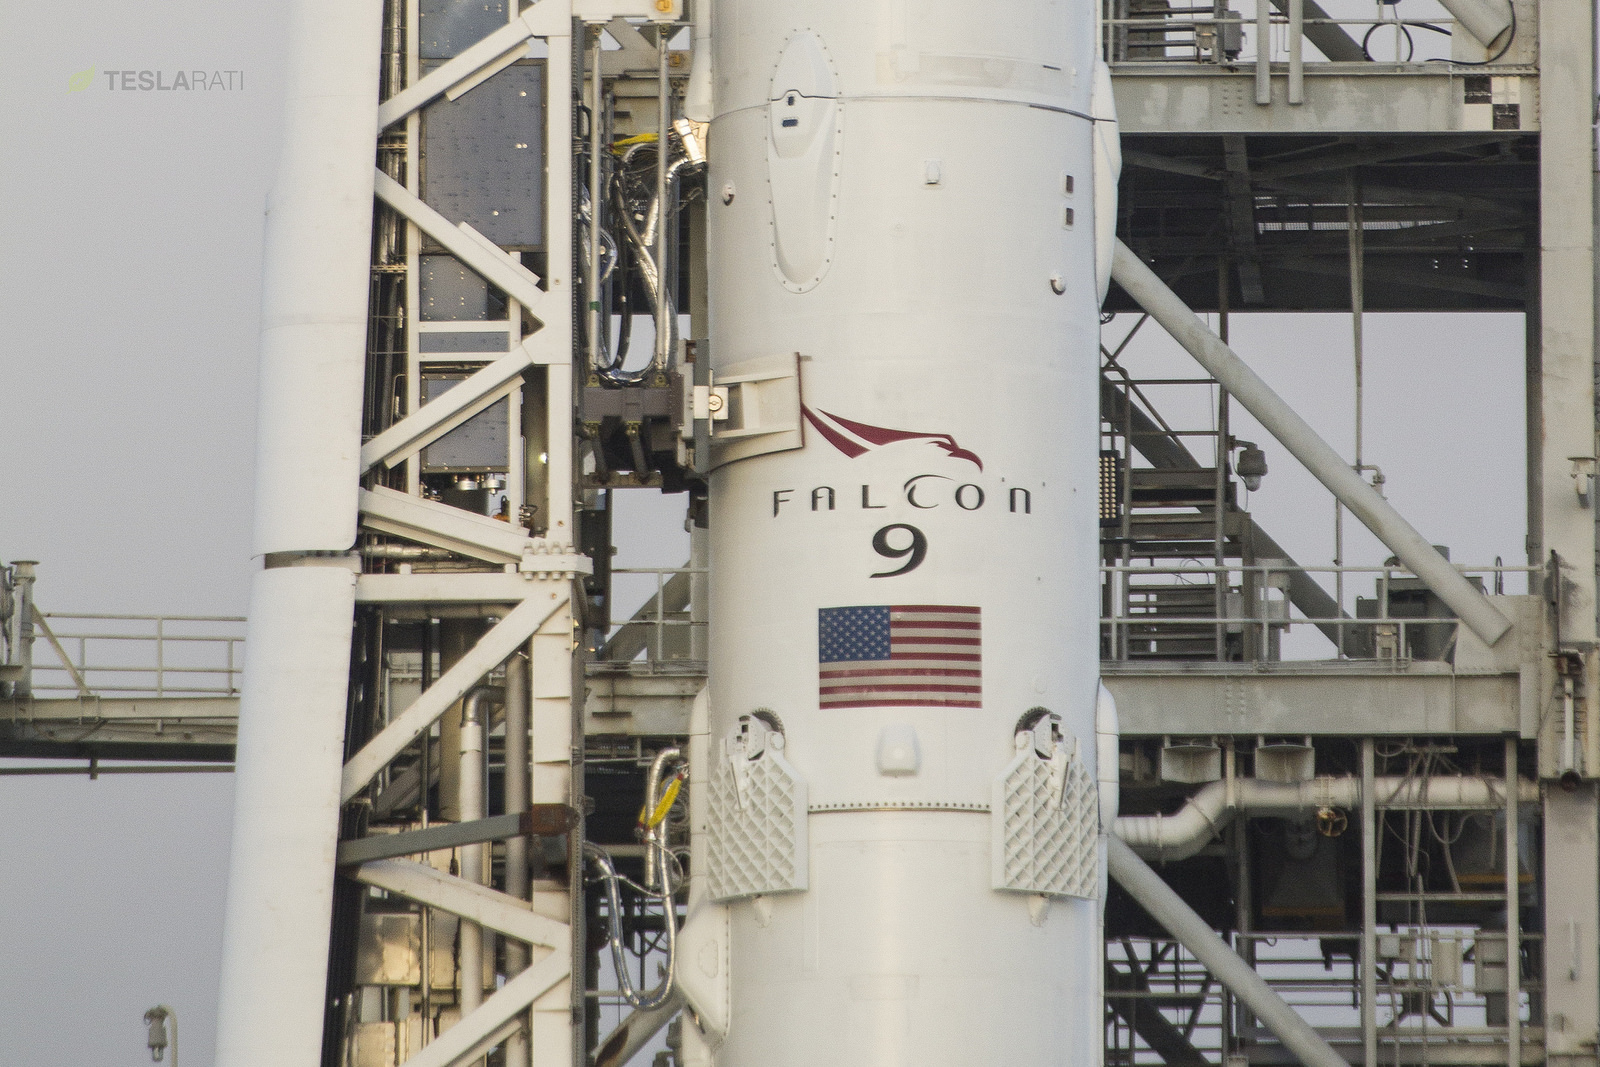 spacex-falcon-9-transporter-tom-cross-ses-11